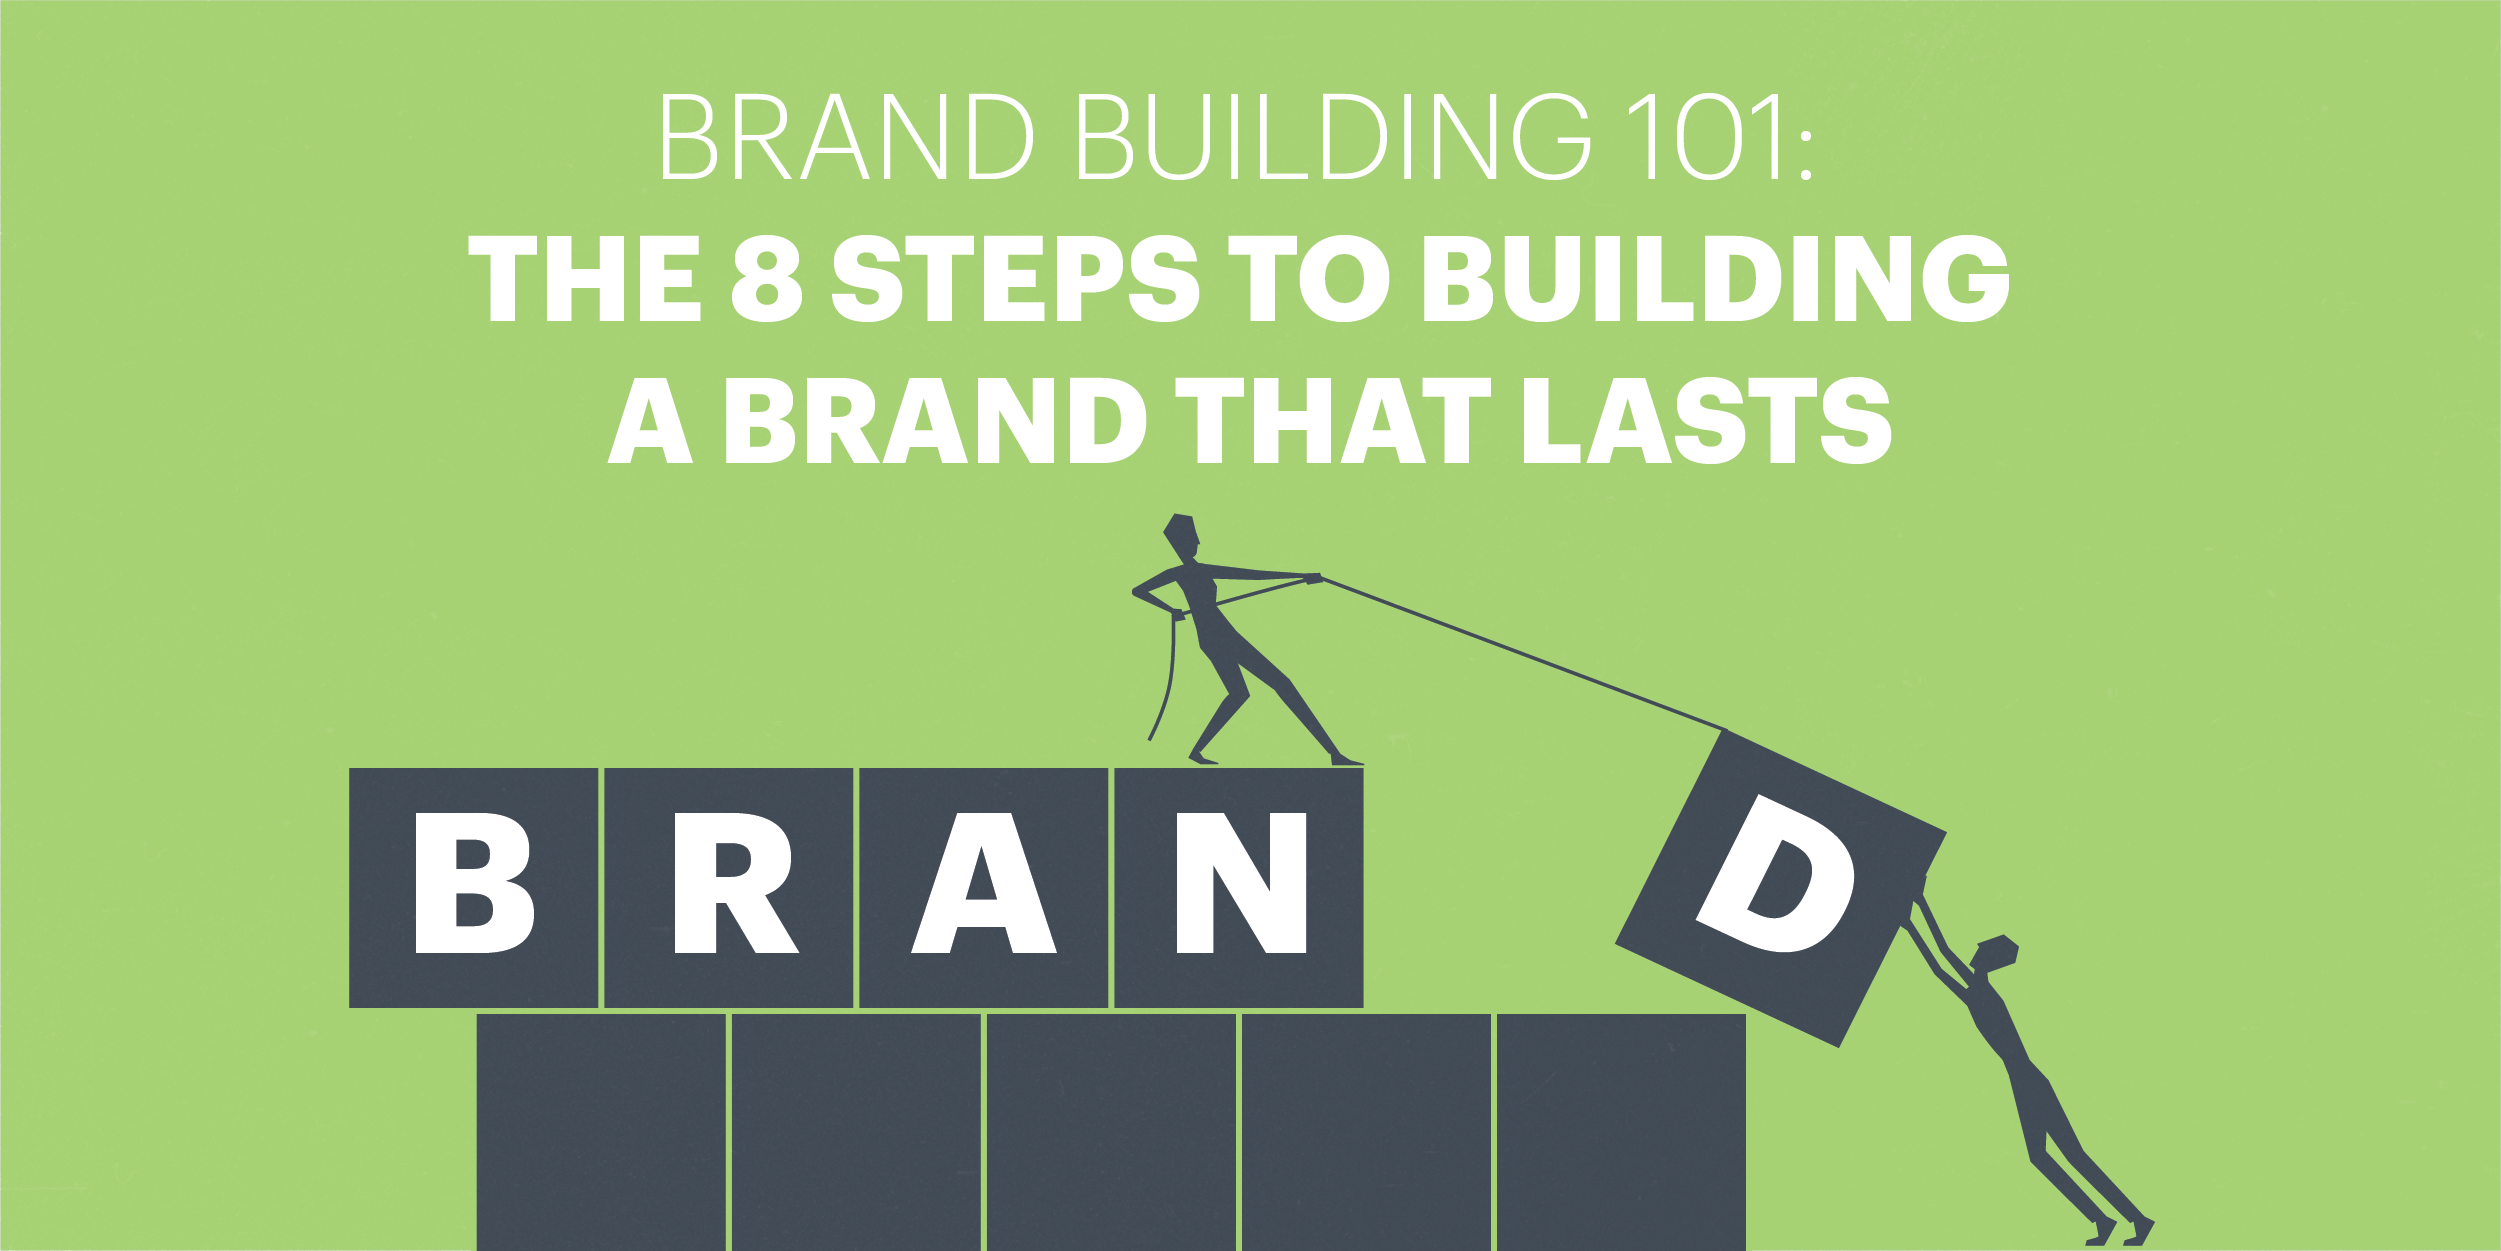 Brand Building 101 An 8 Step Brand Development Strategy